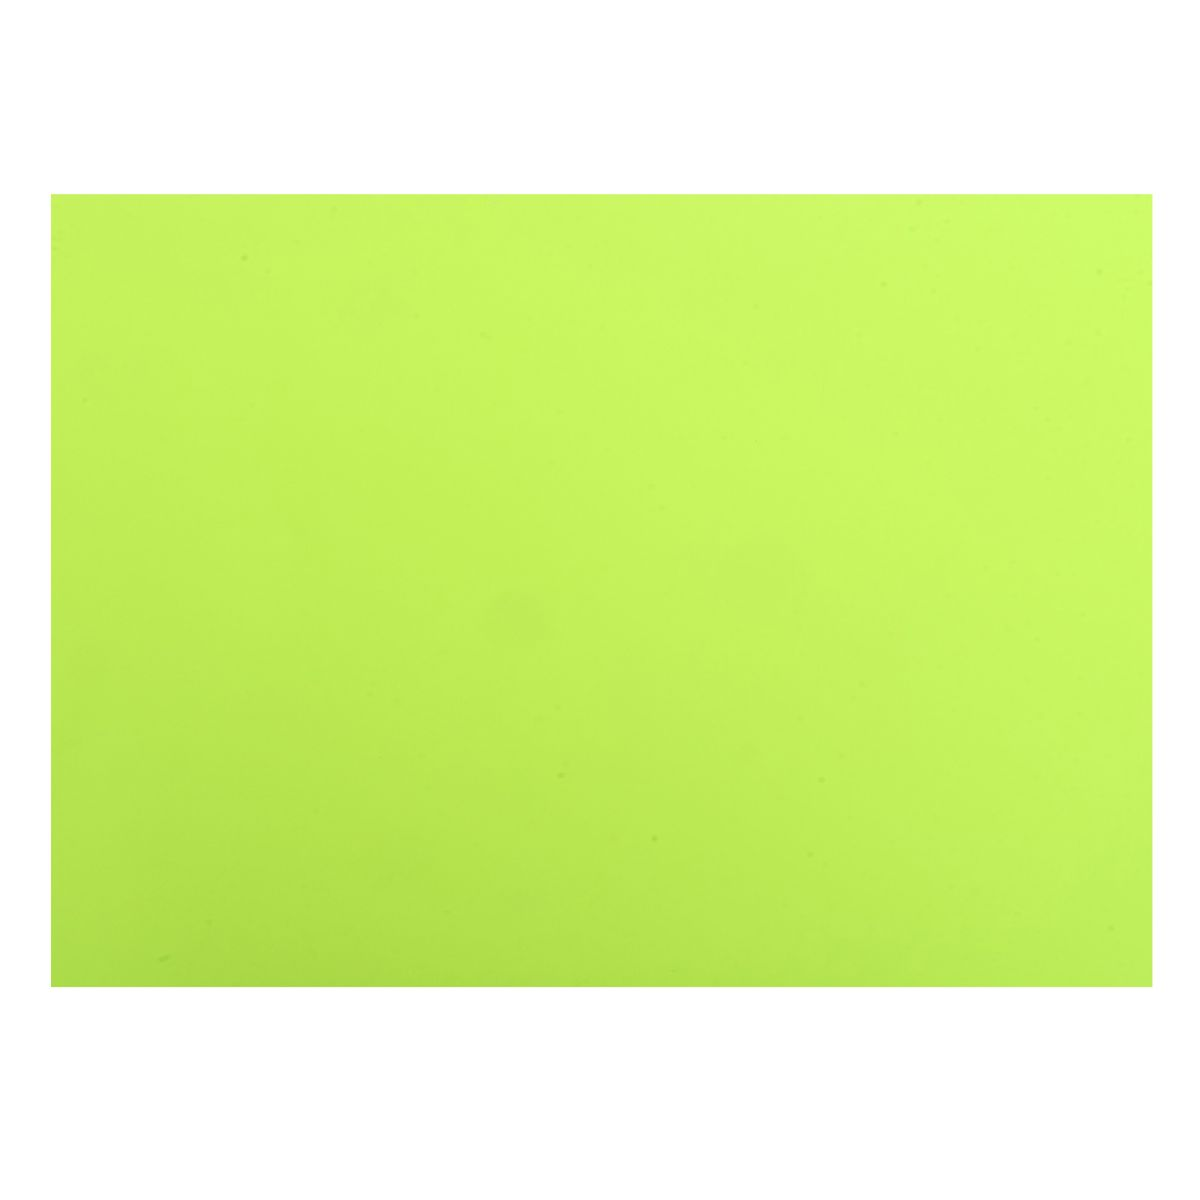 Image of 380mic Fluorescent Card 450x640mm, Yellow